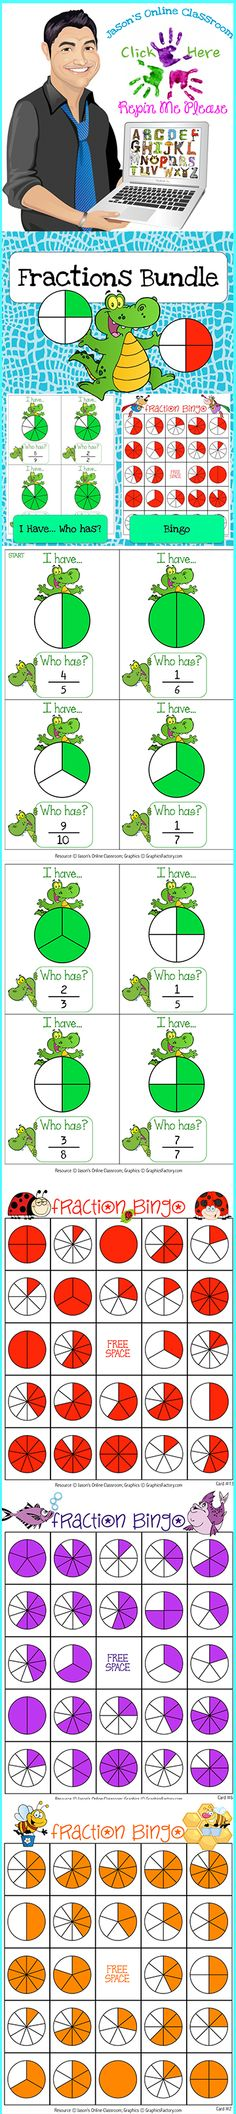 $6.50 - This resource features our Fractions I Have...Who Has? Game + our Fractions Bingo Game in one awesome BUNDLE PACKAGE for a much cheaper price than purchasing each separately!  Click on the link below for more info about the images used to make this resource (Images © Graphics Factory) http://jasonsonlineclassroom.com./graphics-factory/